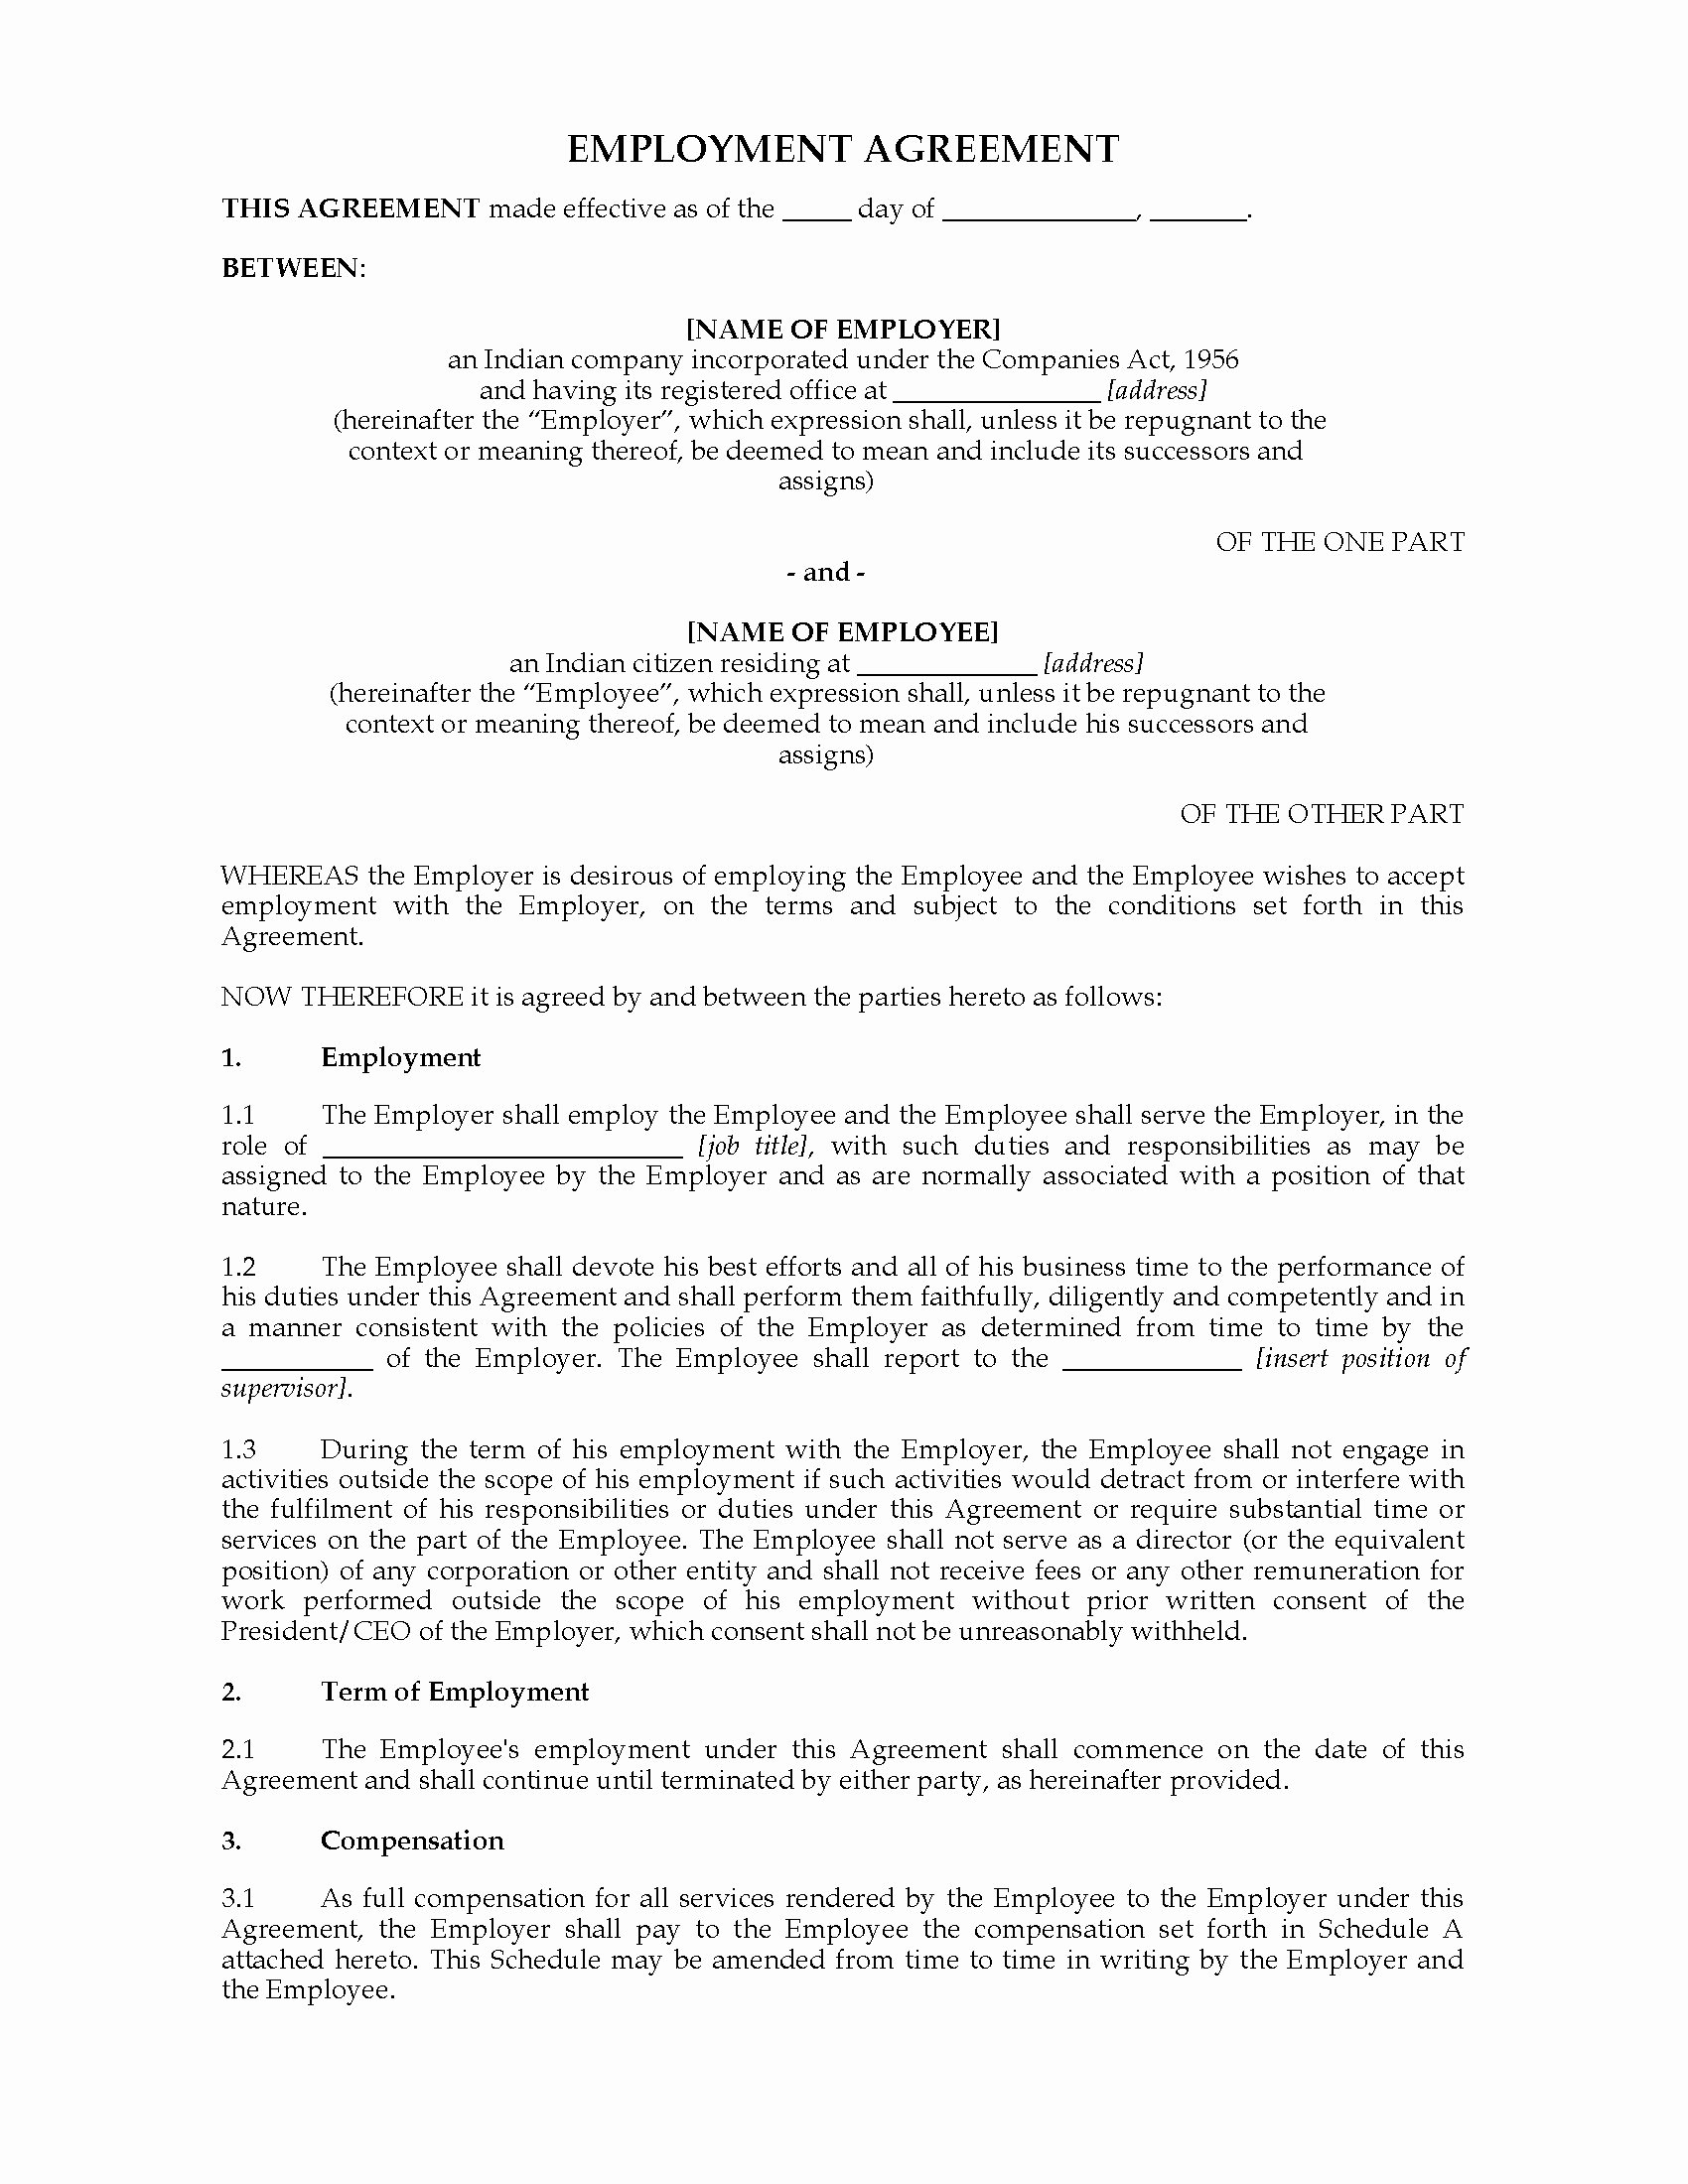 Non Compete Agreement Georgia Template Best Of India Employment Agreement form